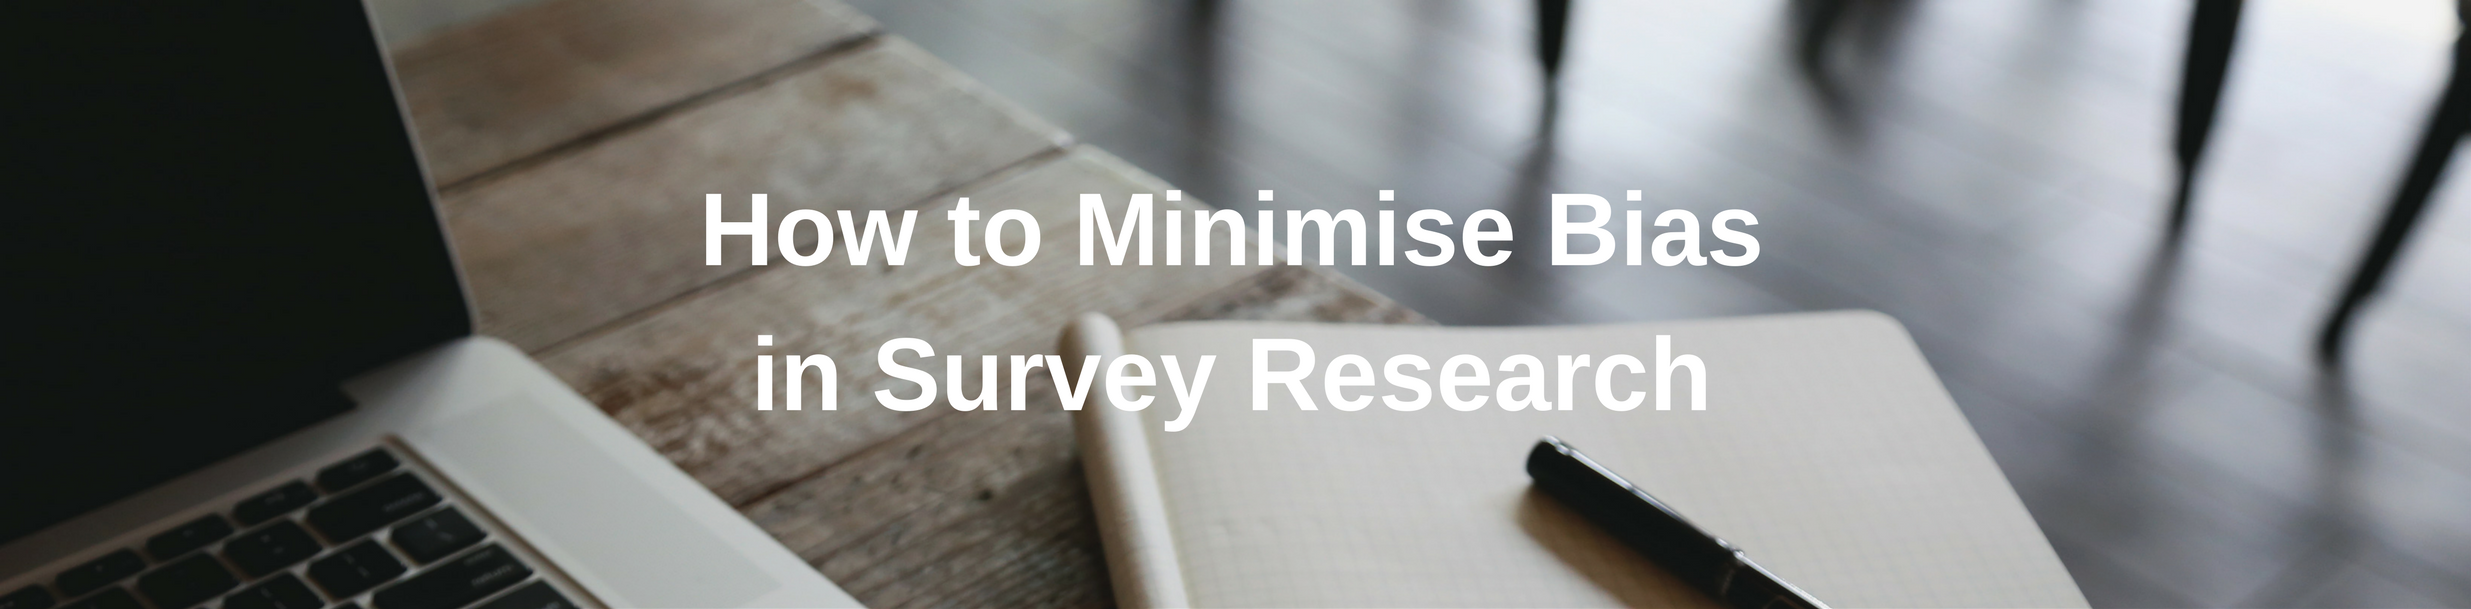 How to Minimise Bias in Survey Research